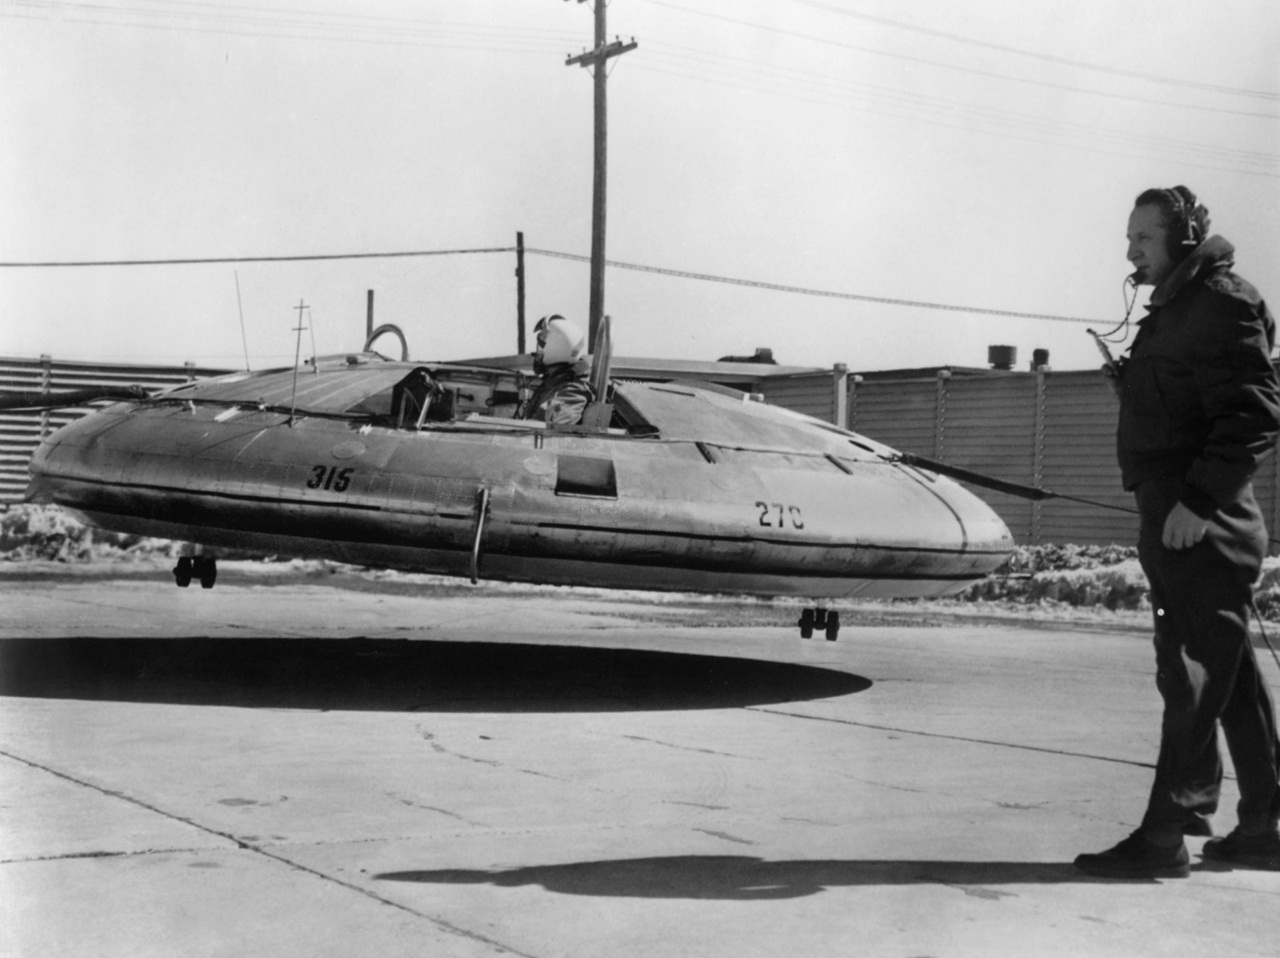 Before free-flight tests, the Avrocar was flown with tethers, seen here in front and behind the aircraft, for safety reasons. (U.S. Air Force photo)